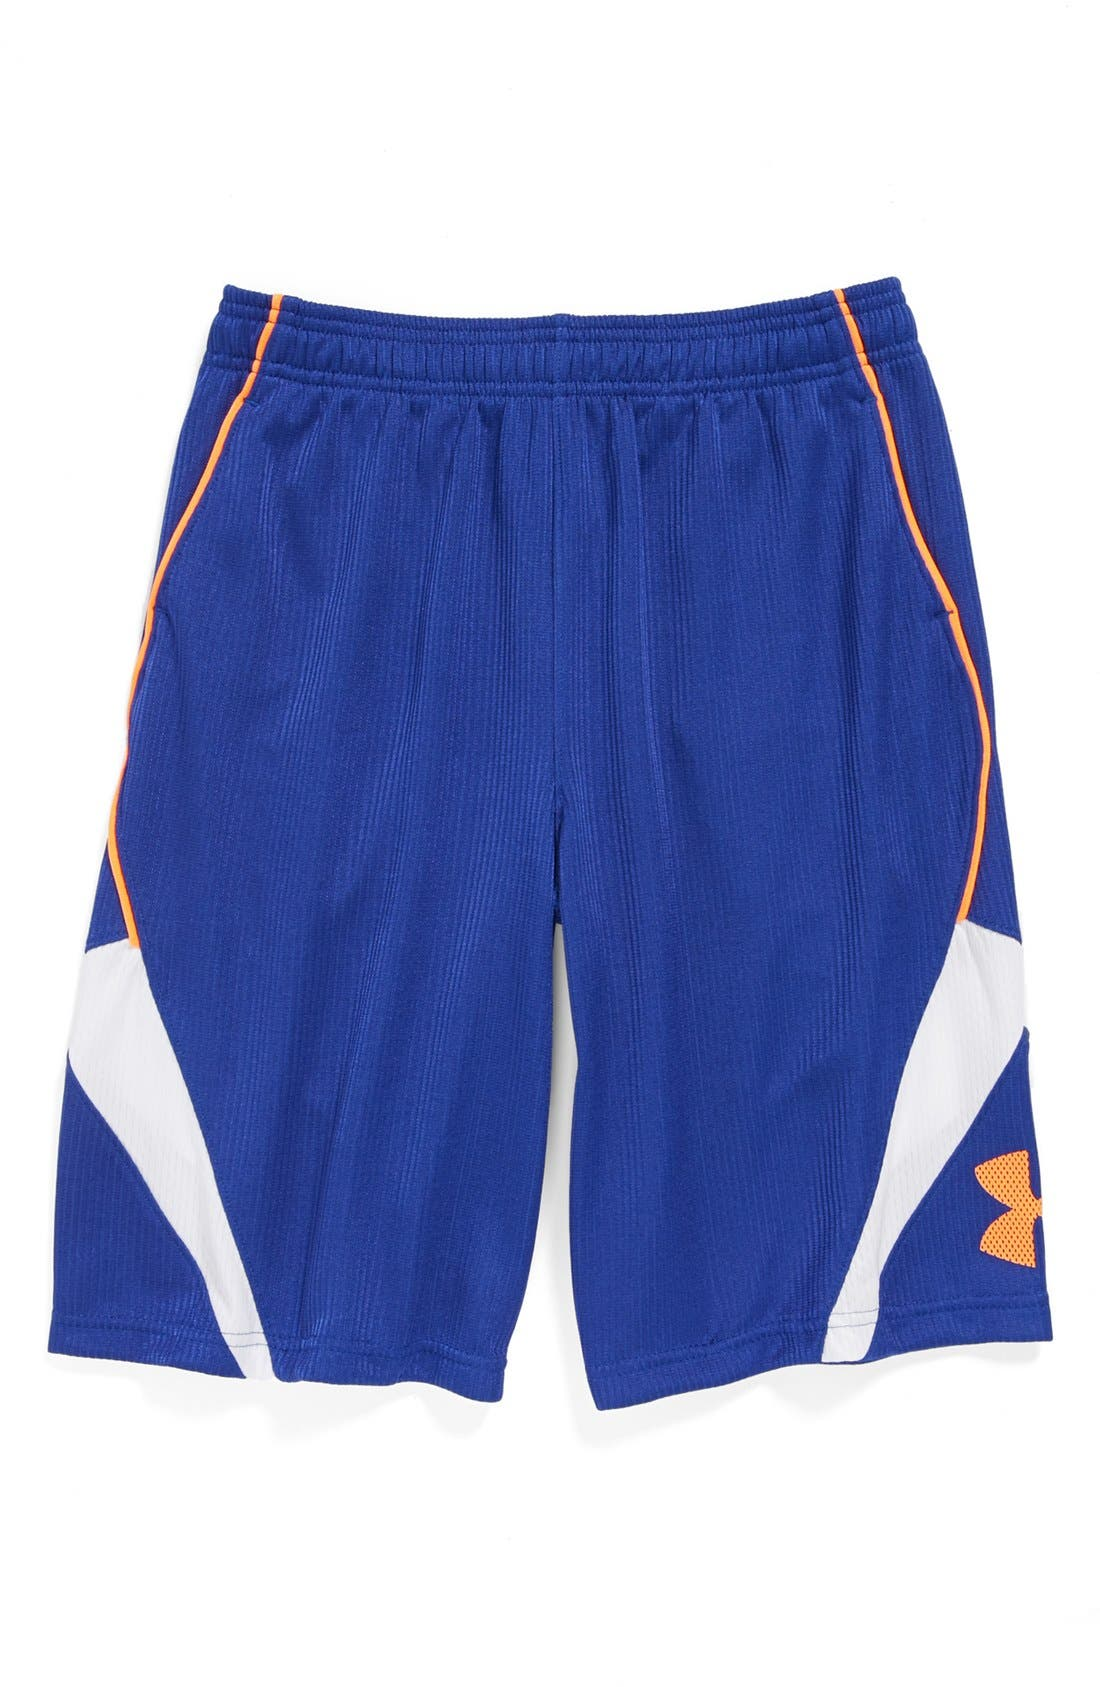 Alternate Image 1 Selected - Under Armour 'Jhawk' Shorts (Big Boys)